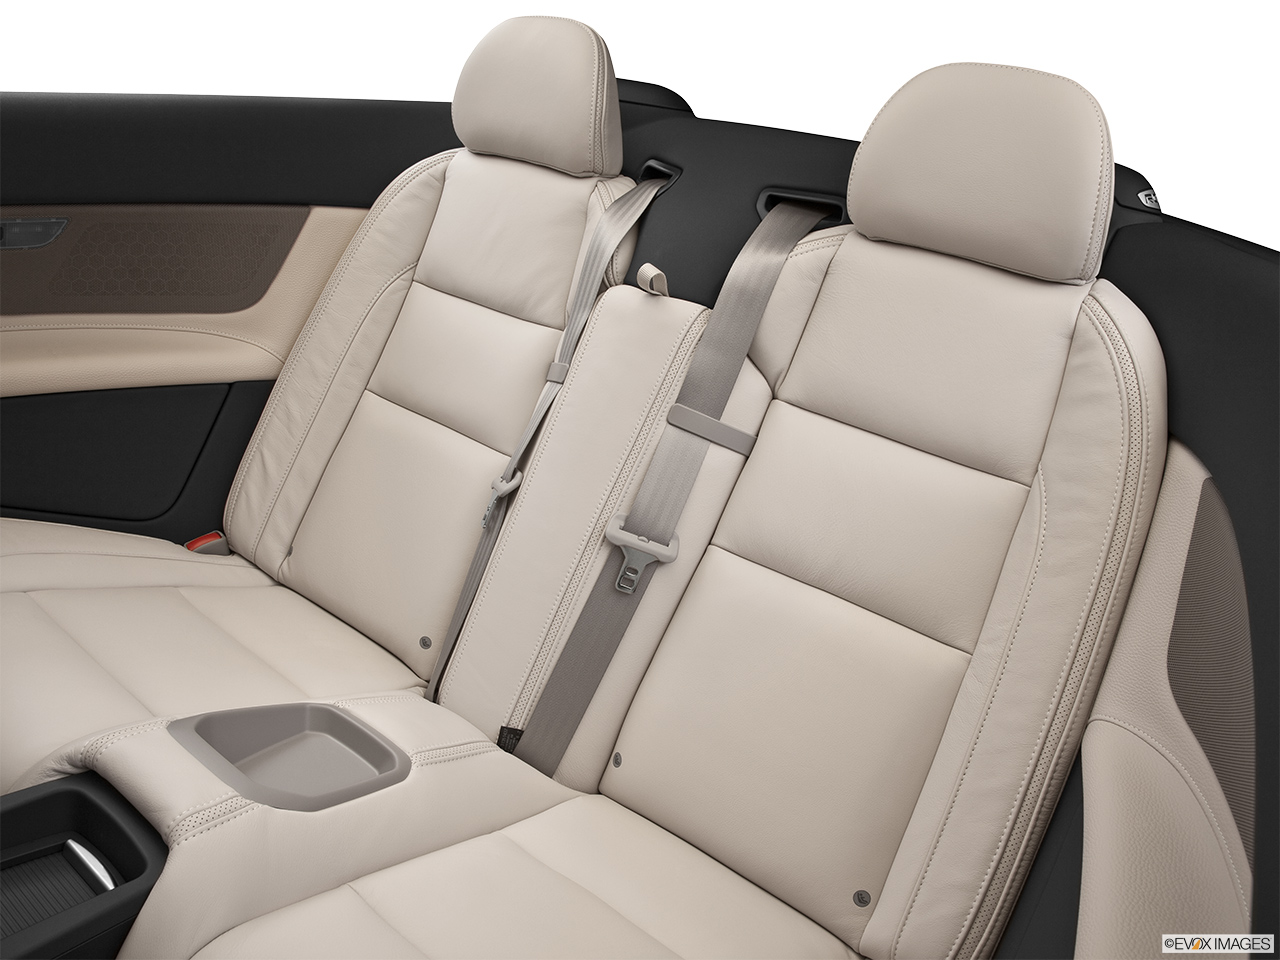 2013 Volvo C70 T5 Platinum Rear seats from Drivers Side.